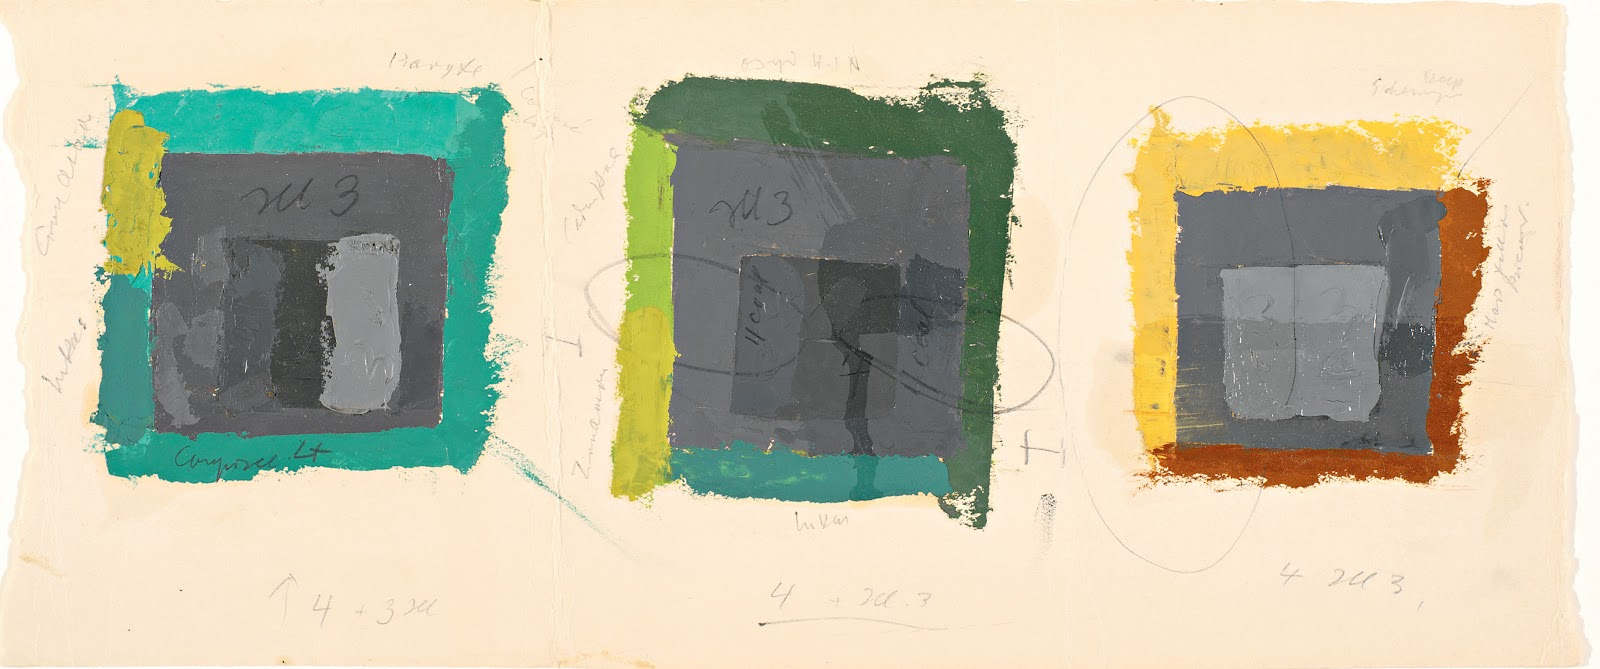 7.+Three+Color+Studies+for+Homage+to+the+Square.1976.2.192.jpg